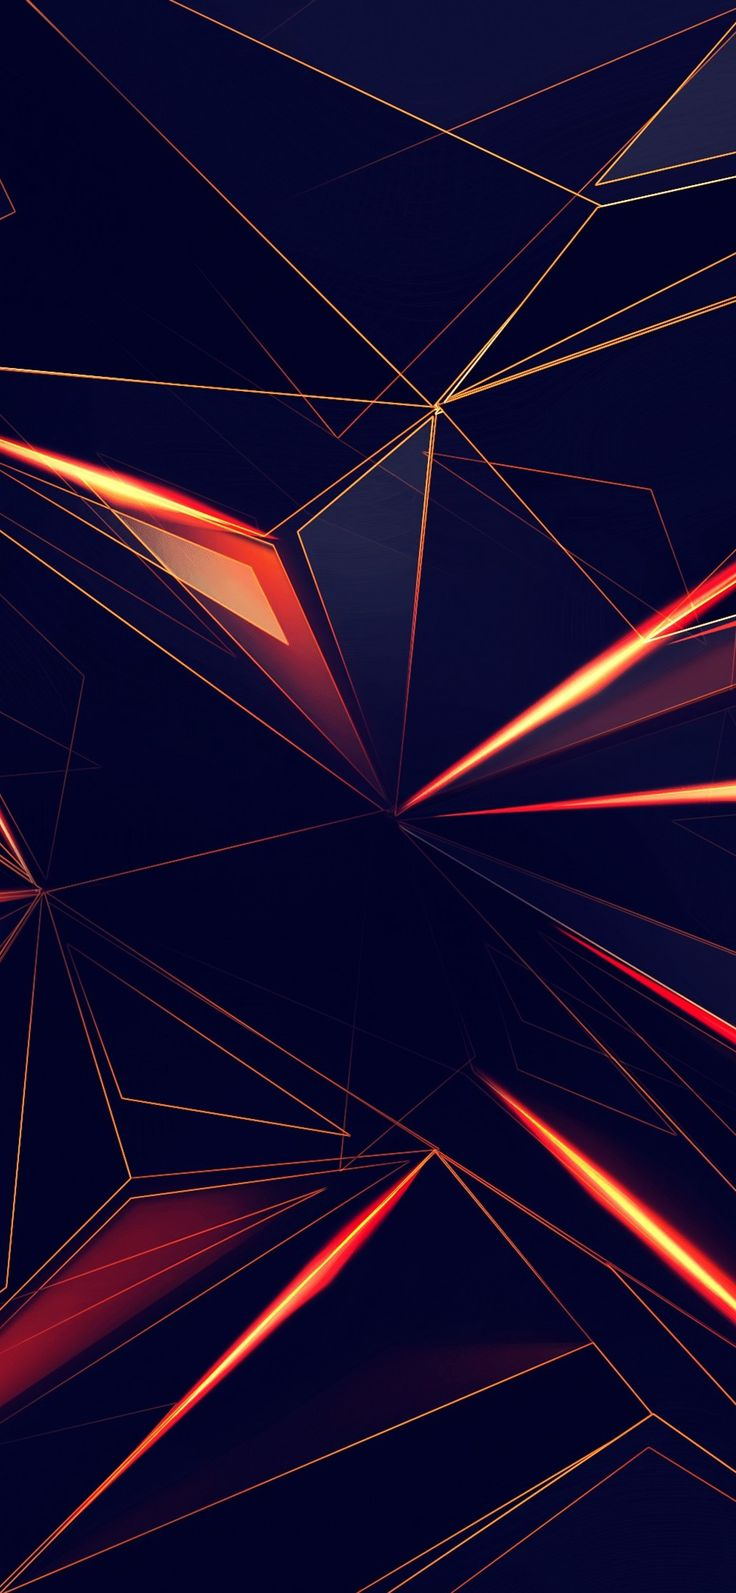 3d Shapes Abstract Lines 4k In 1125×2436 Resolution